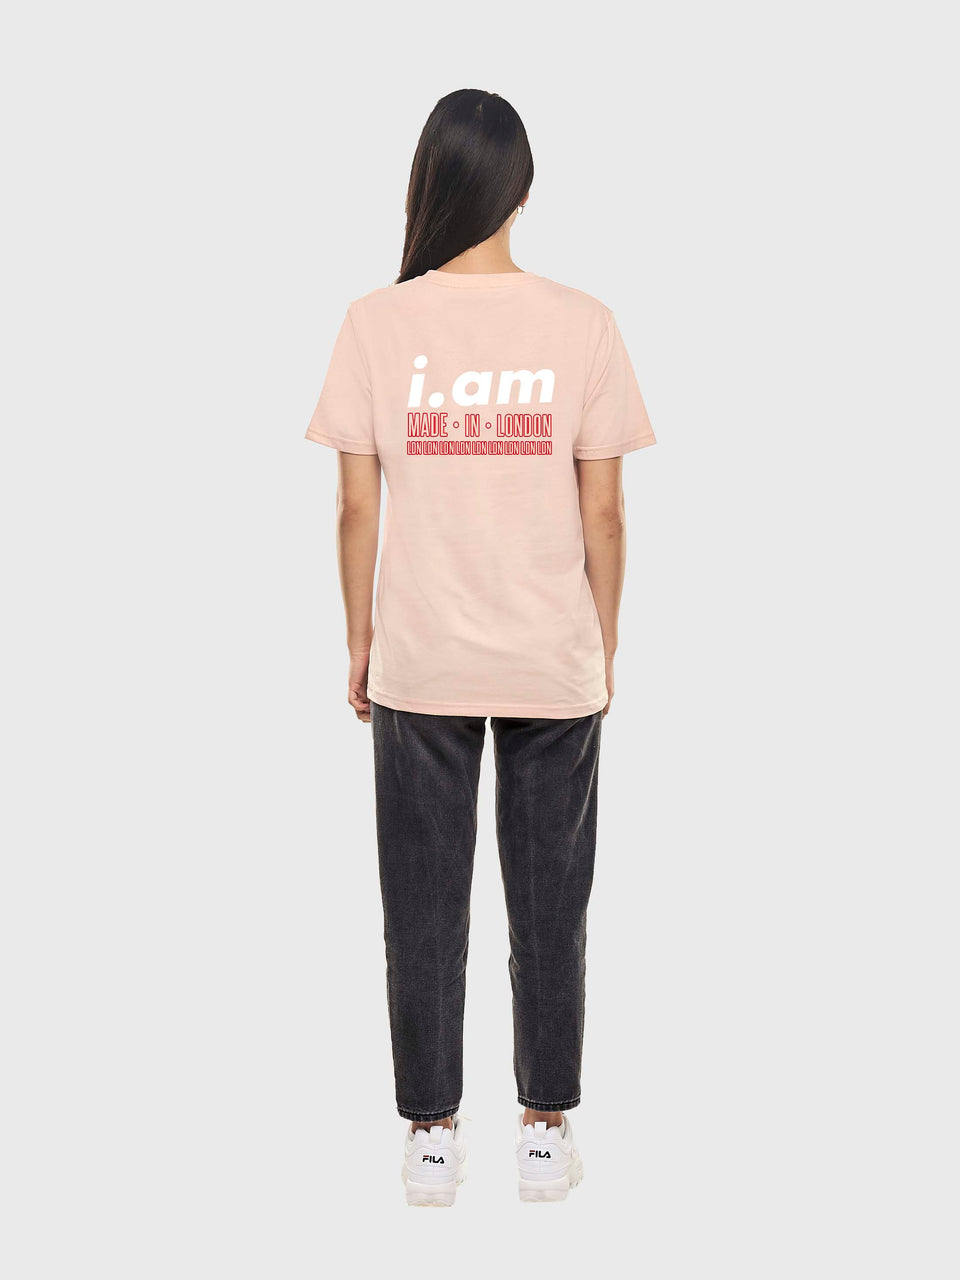 Made in London - Pink - Unisex T